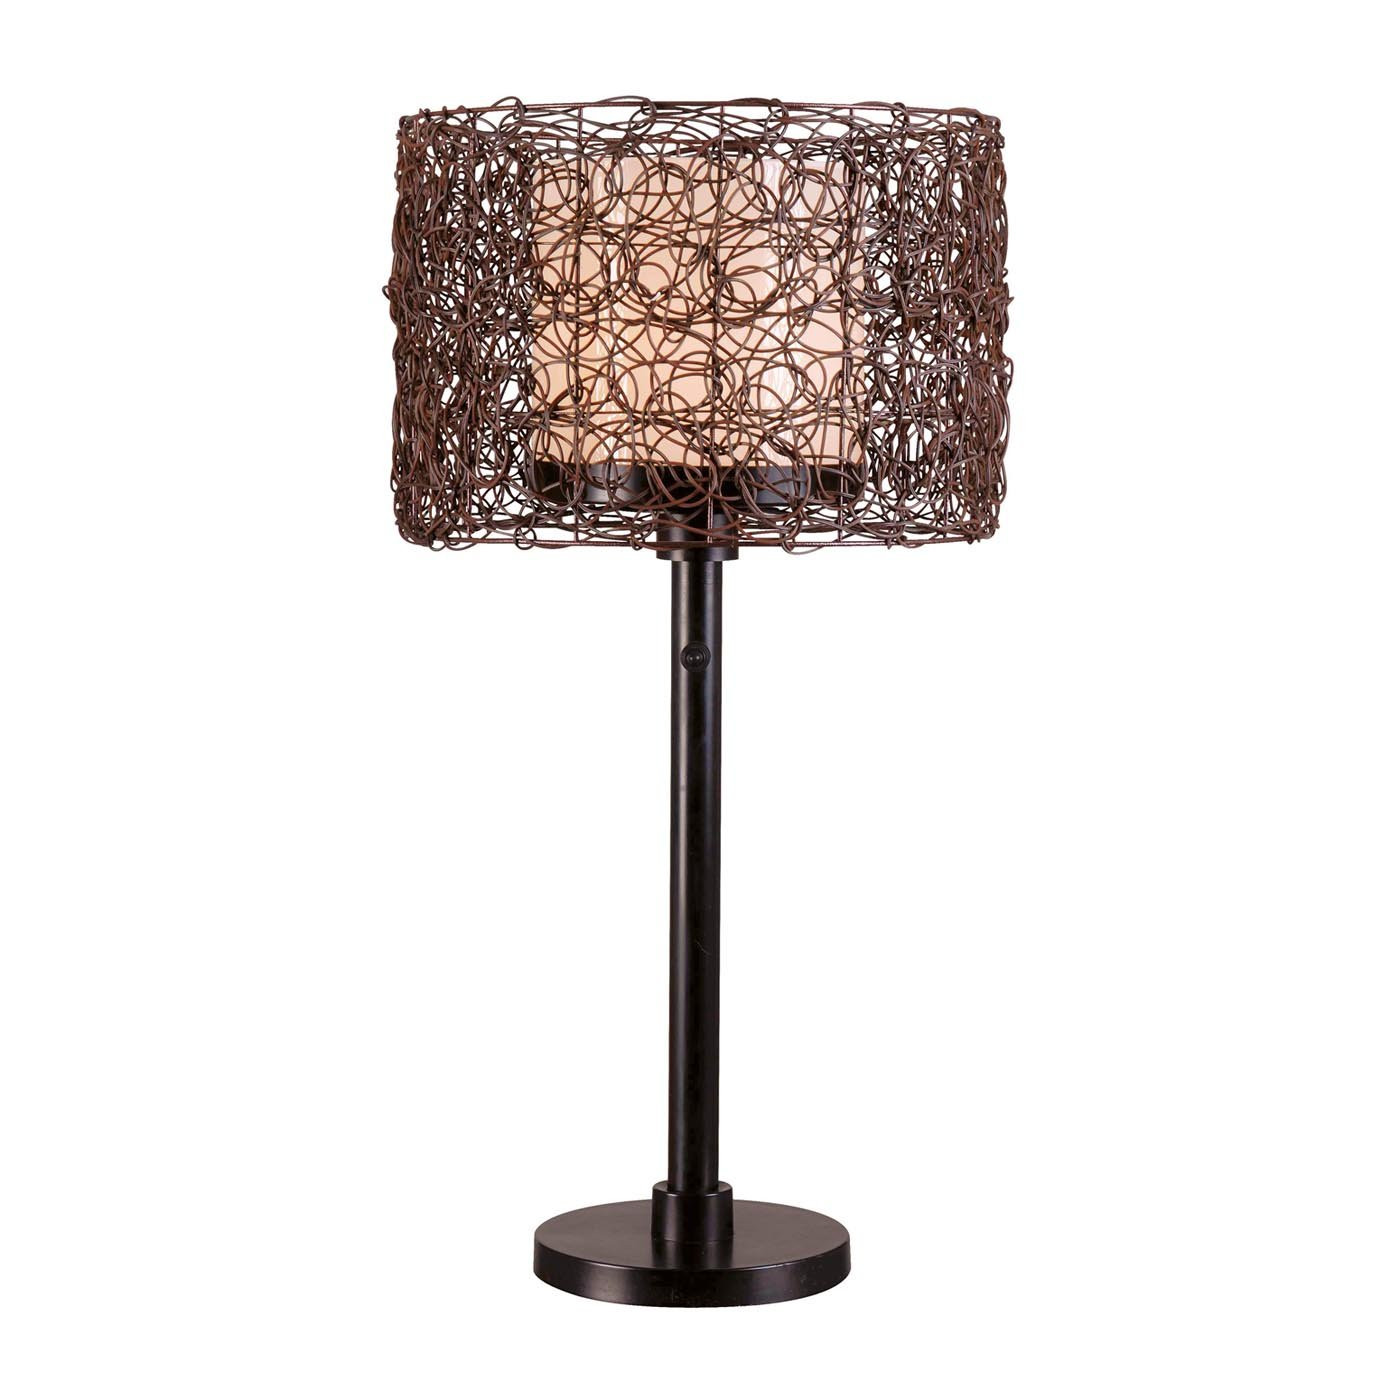 Best ideas about Outdoor Table Lamps . Save or Pin Kenroy Home BRZ Tanglewood Outdoor Table Lamp Now.